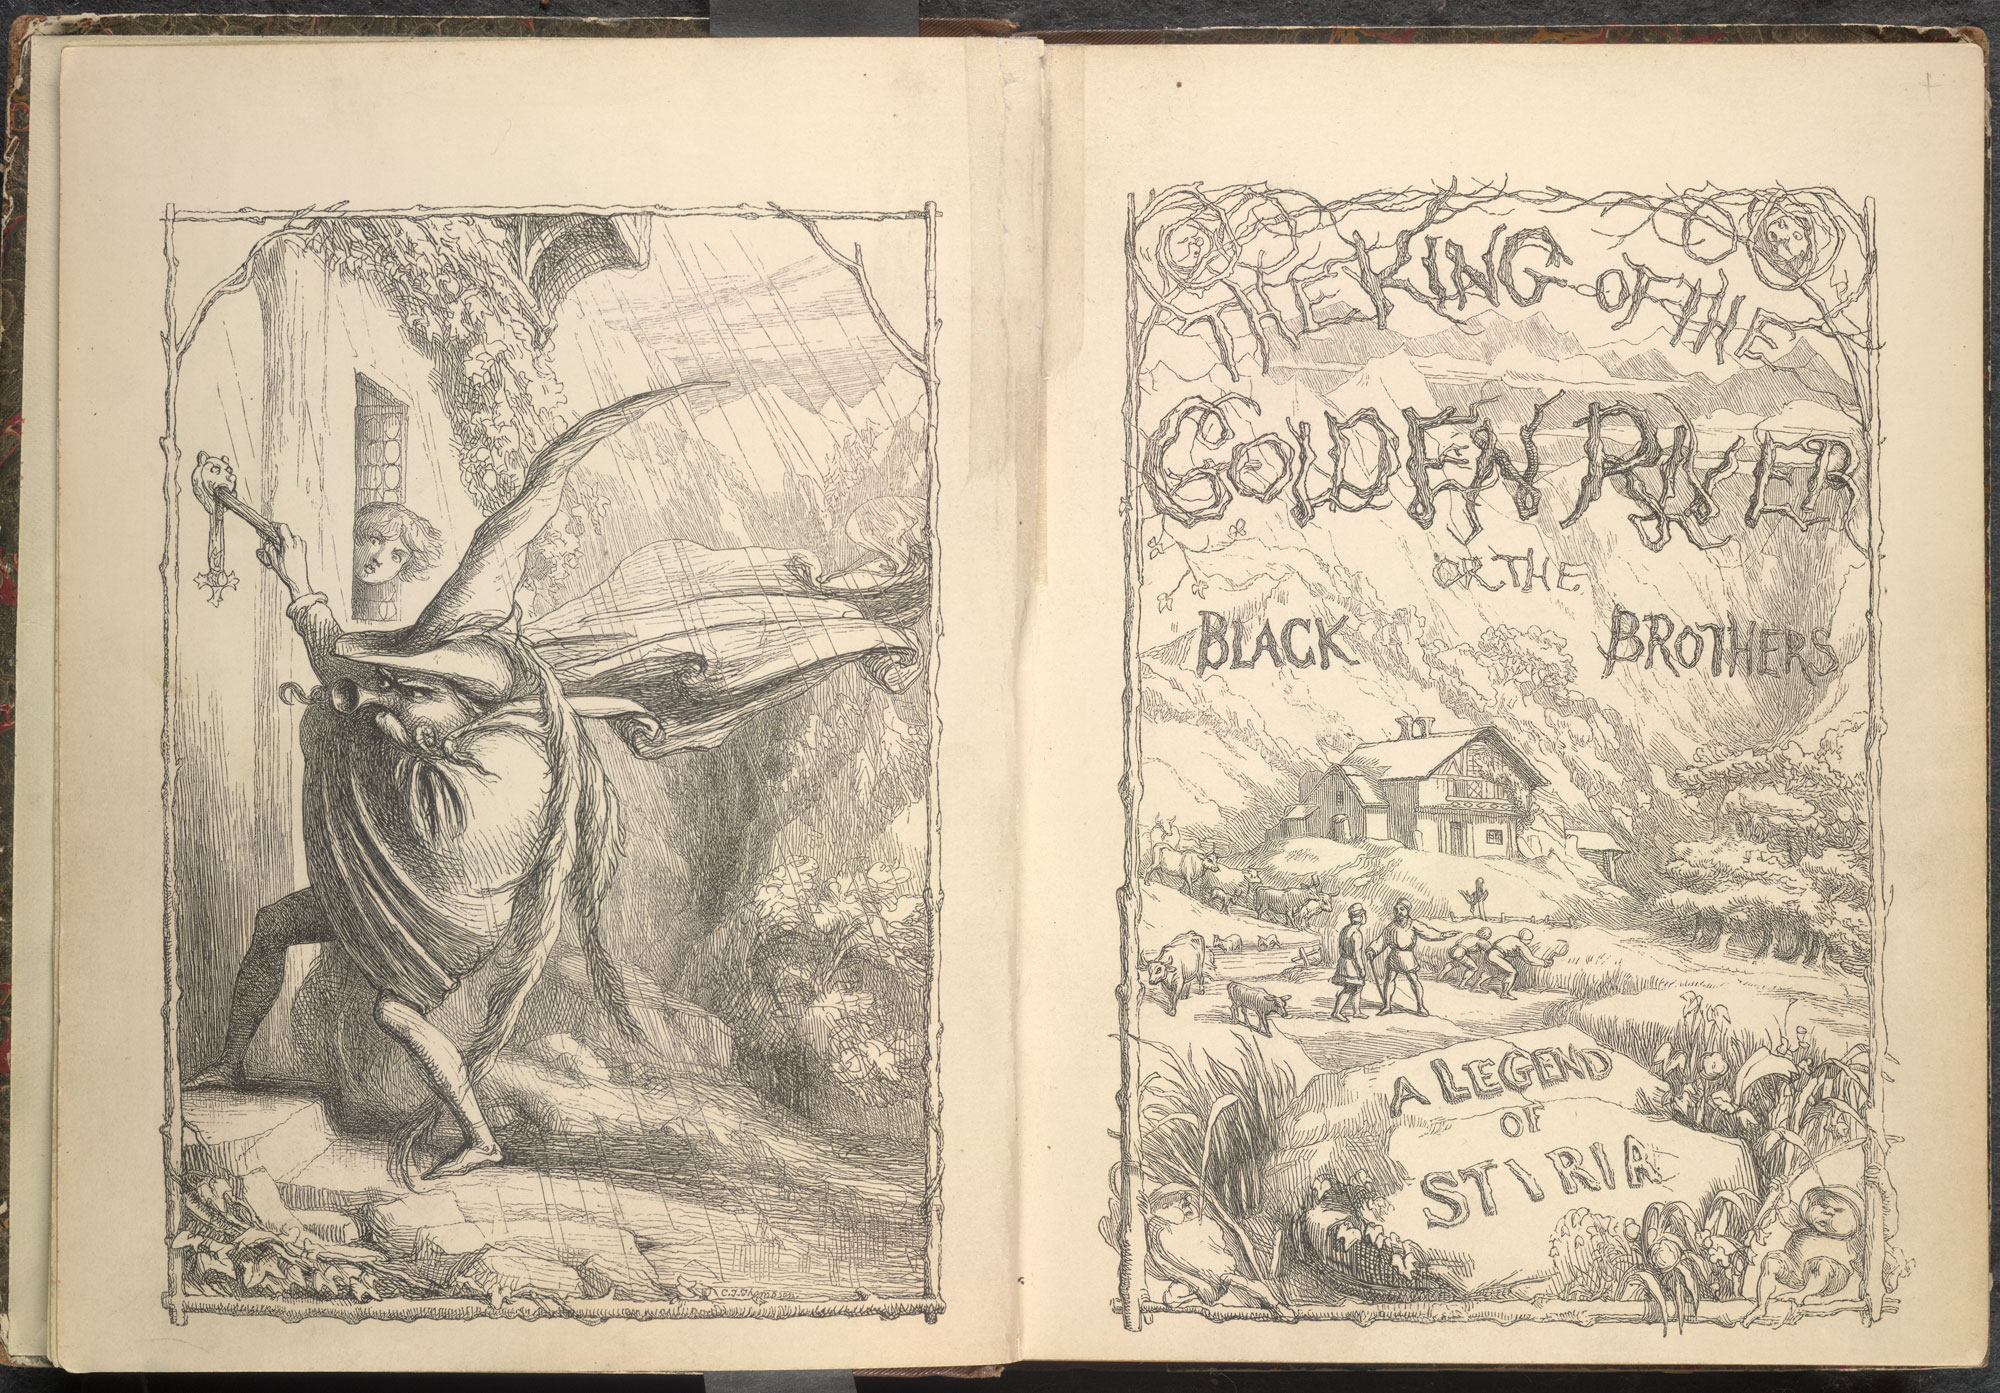 John Ruskin's fairytale for children, The King of the Golden River [page: title page]